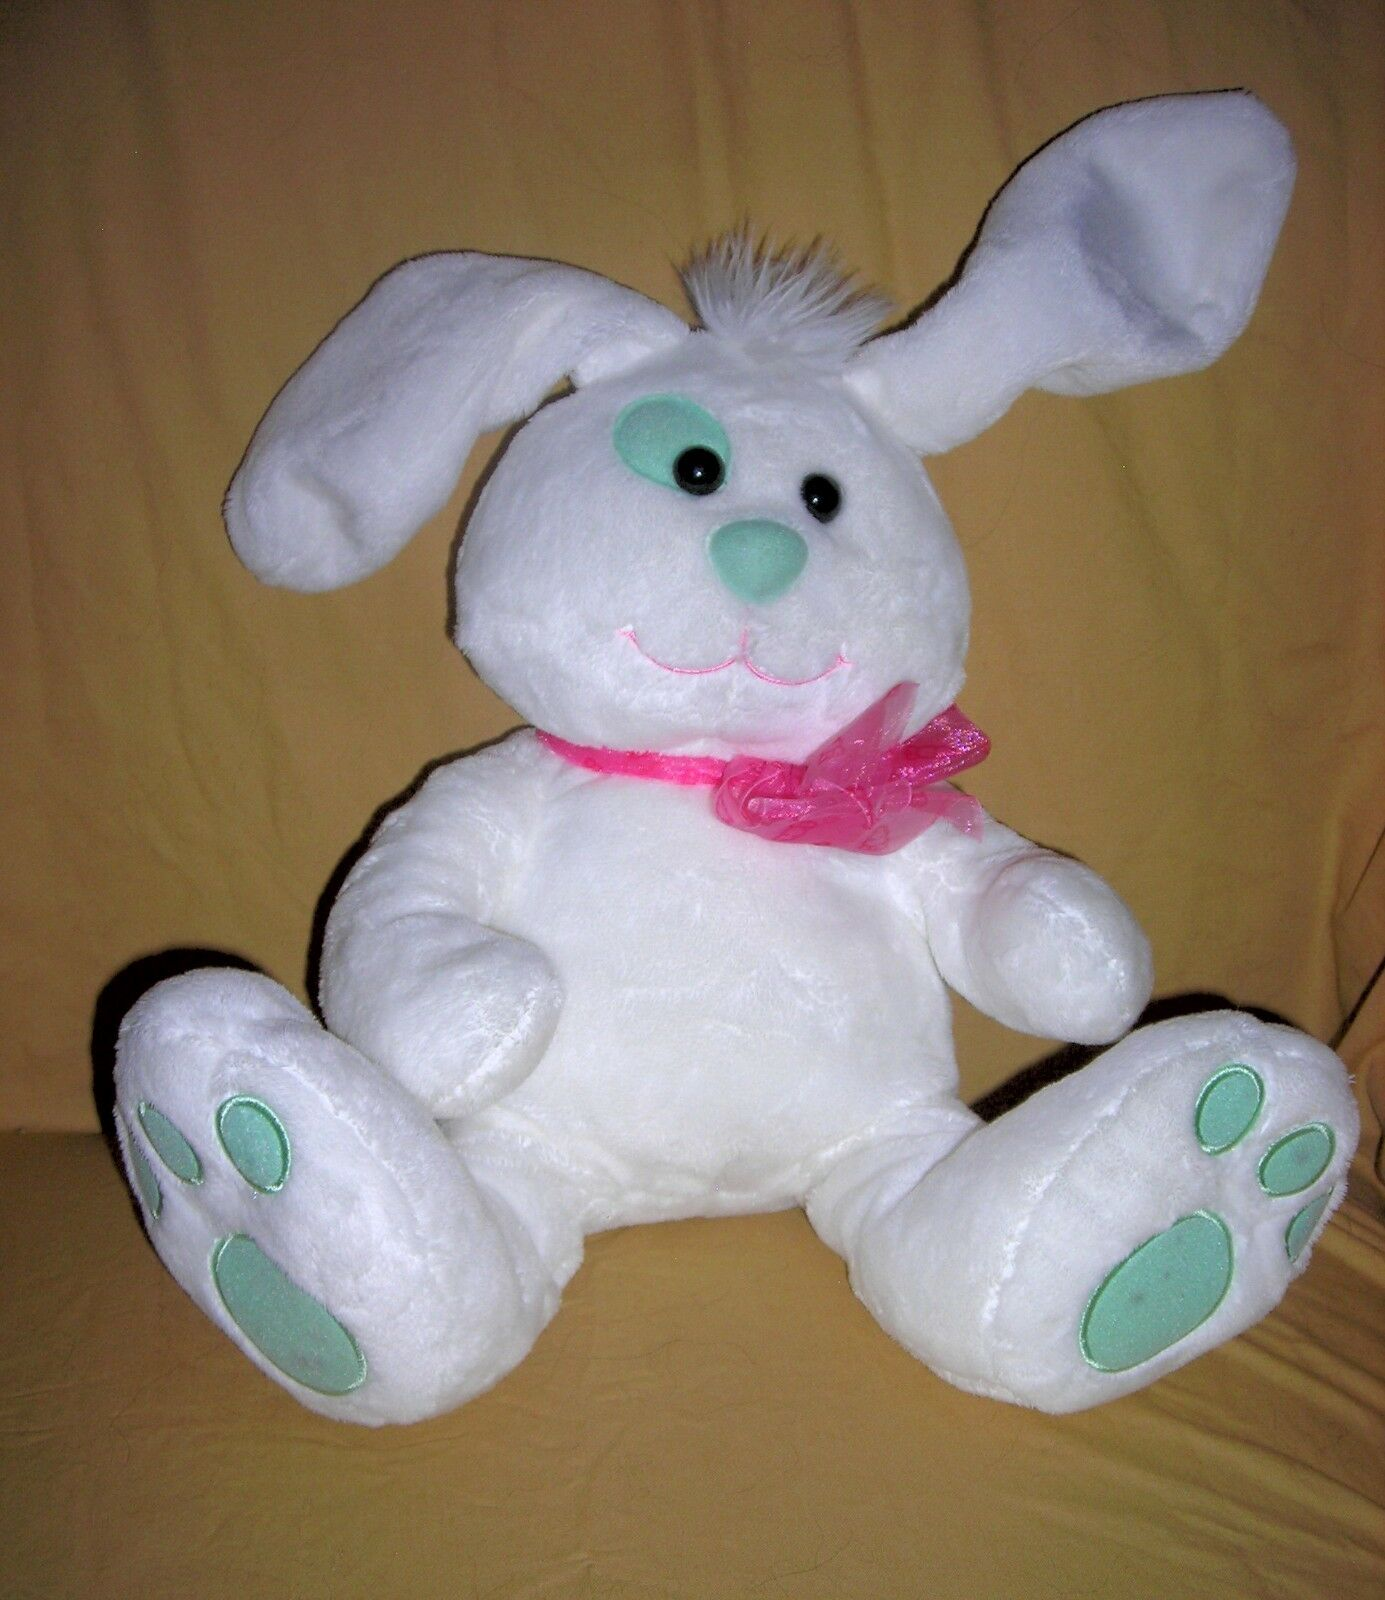 BUNNY RABBIT Weiss With LARGE BIG Feet Pink Bow Sits 10 Inch Ears 344abb